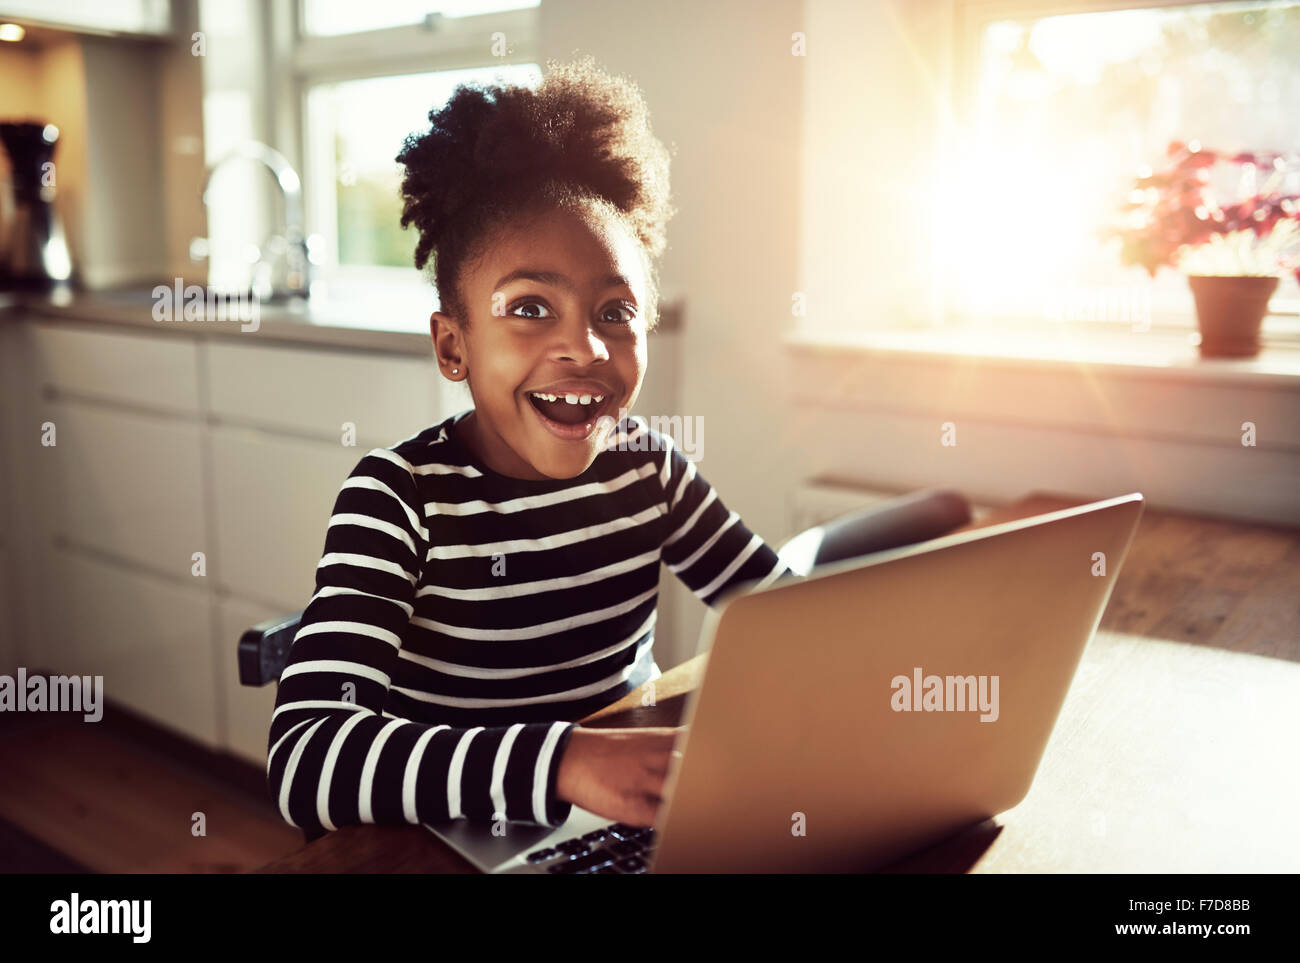 Black girl sitting playing on a laptop computer at home looking at the camera with a joyful expression of amazement - Stock Image